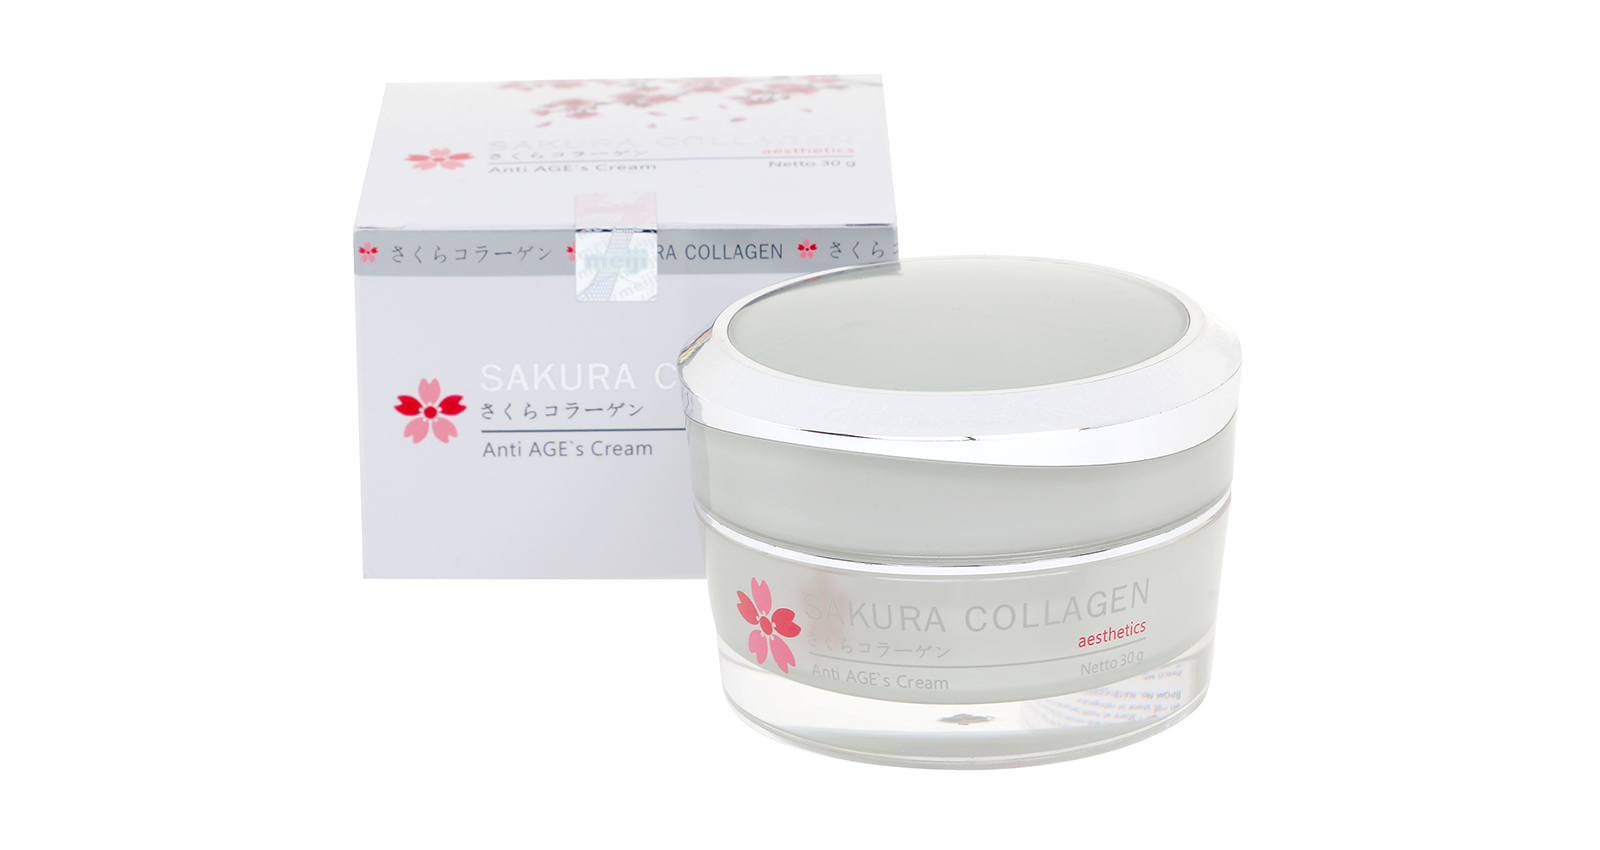 SAKURA COLLAGEN